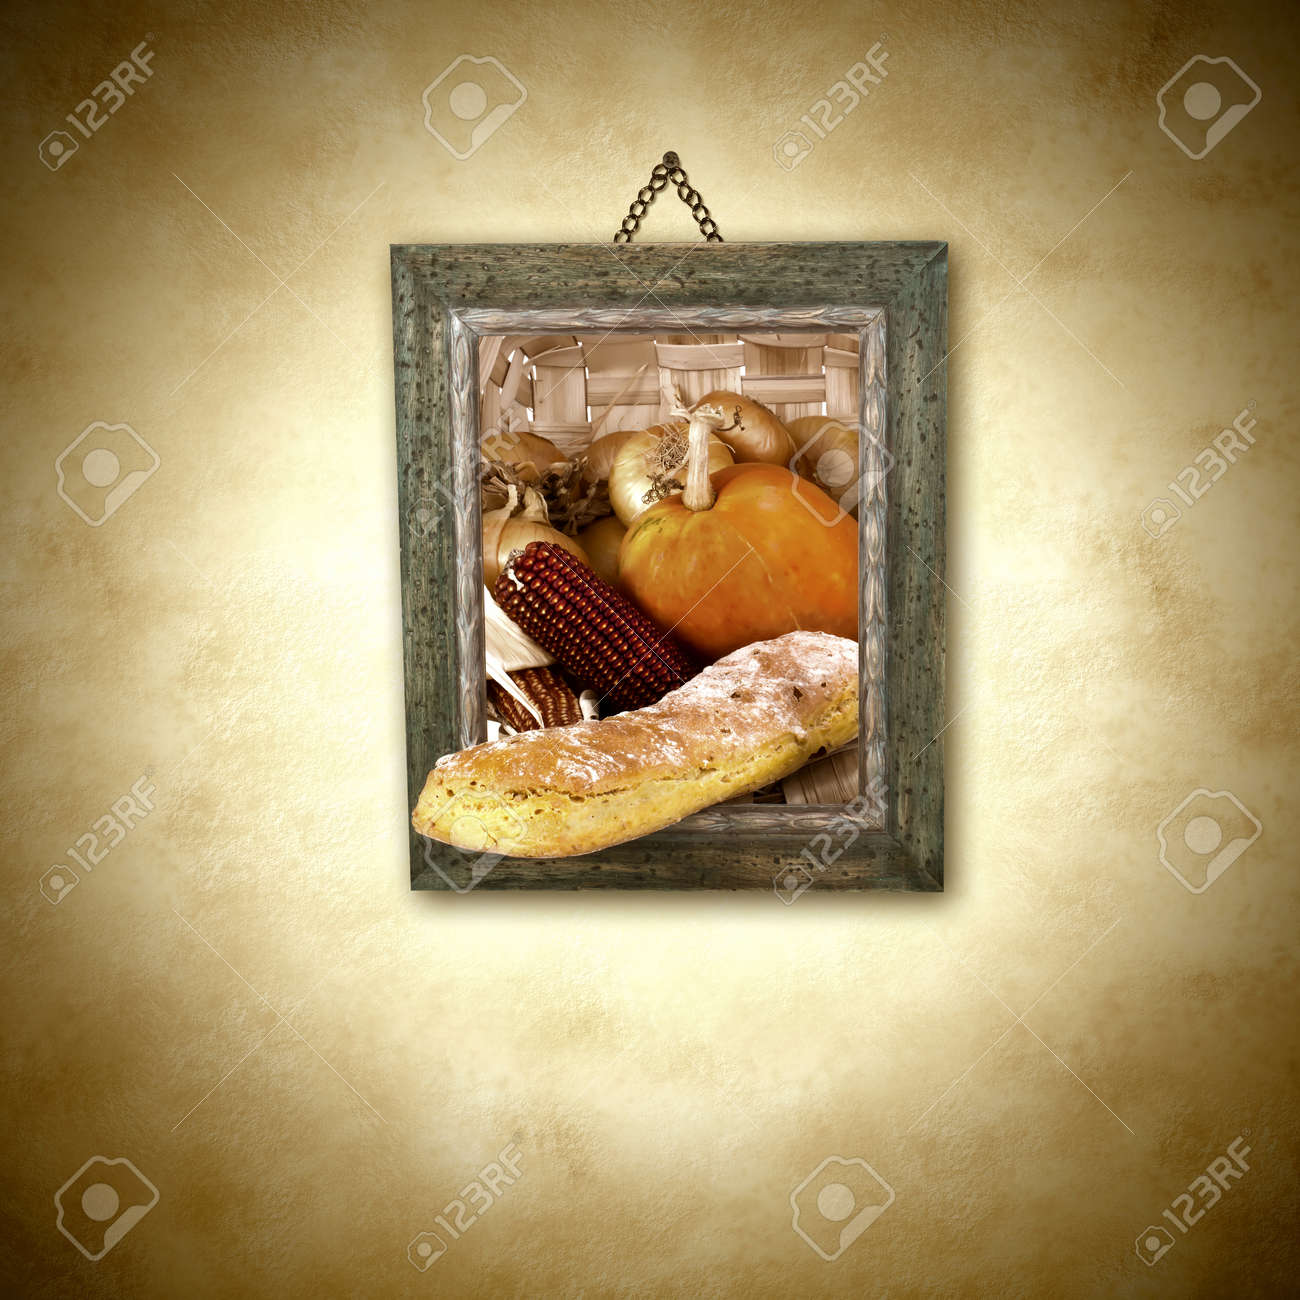 Loaf Of Bread And Harvest, Picture Hanging On The Wall Decoration ...